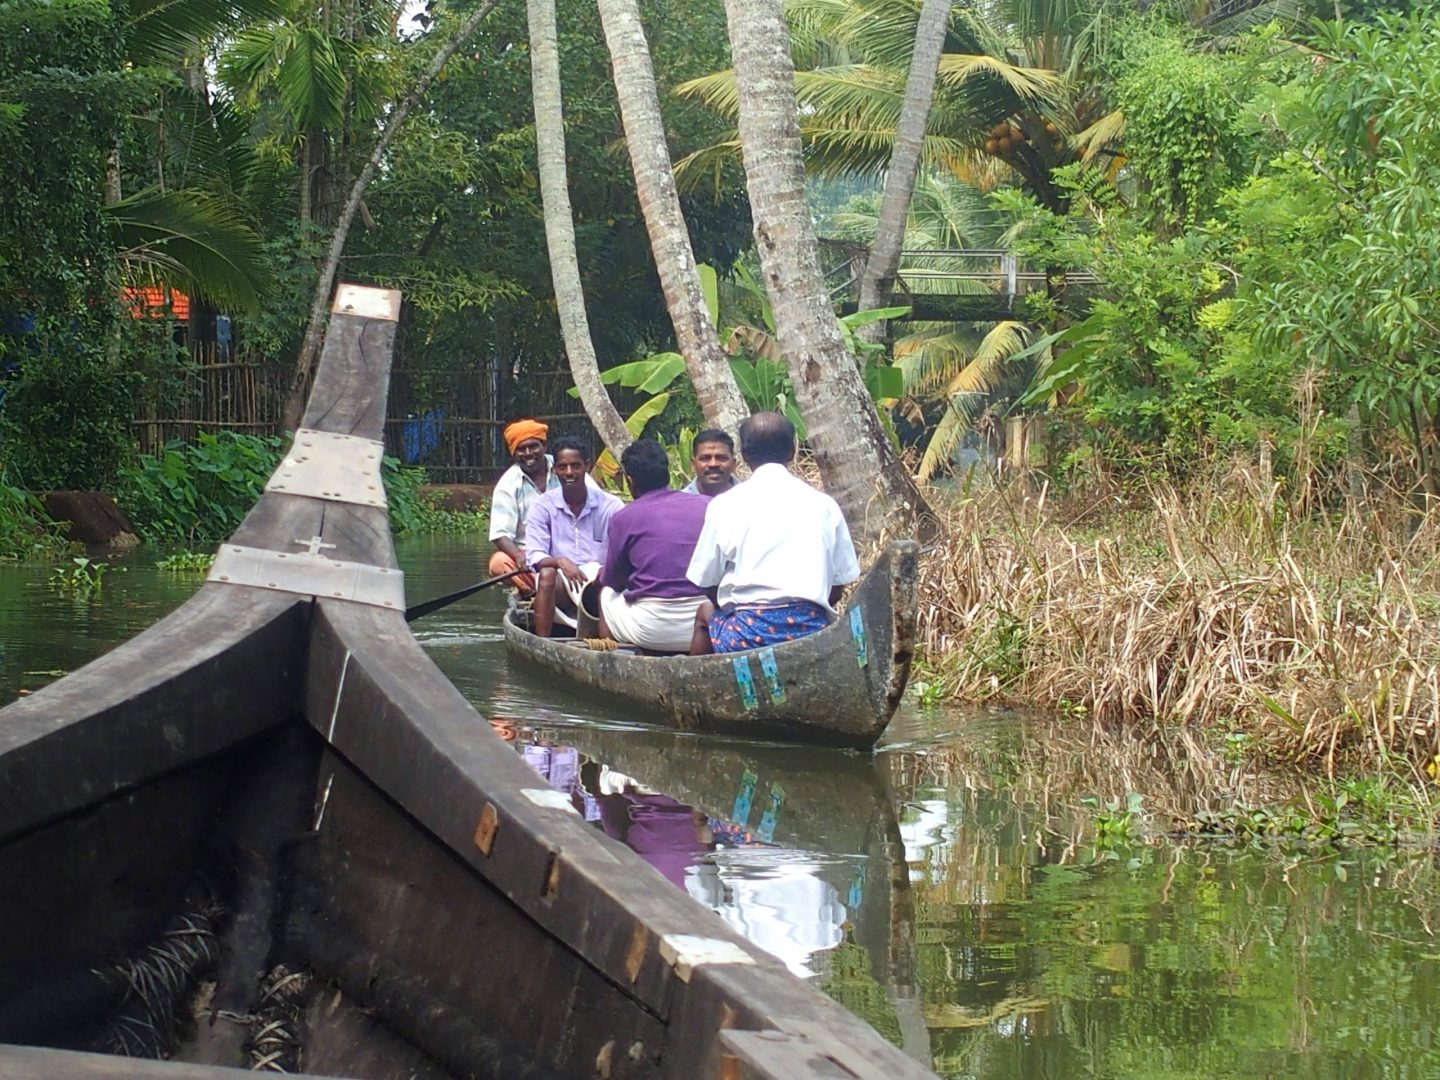 Rencontres sur canal backwaters Kerala Inde